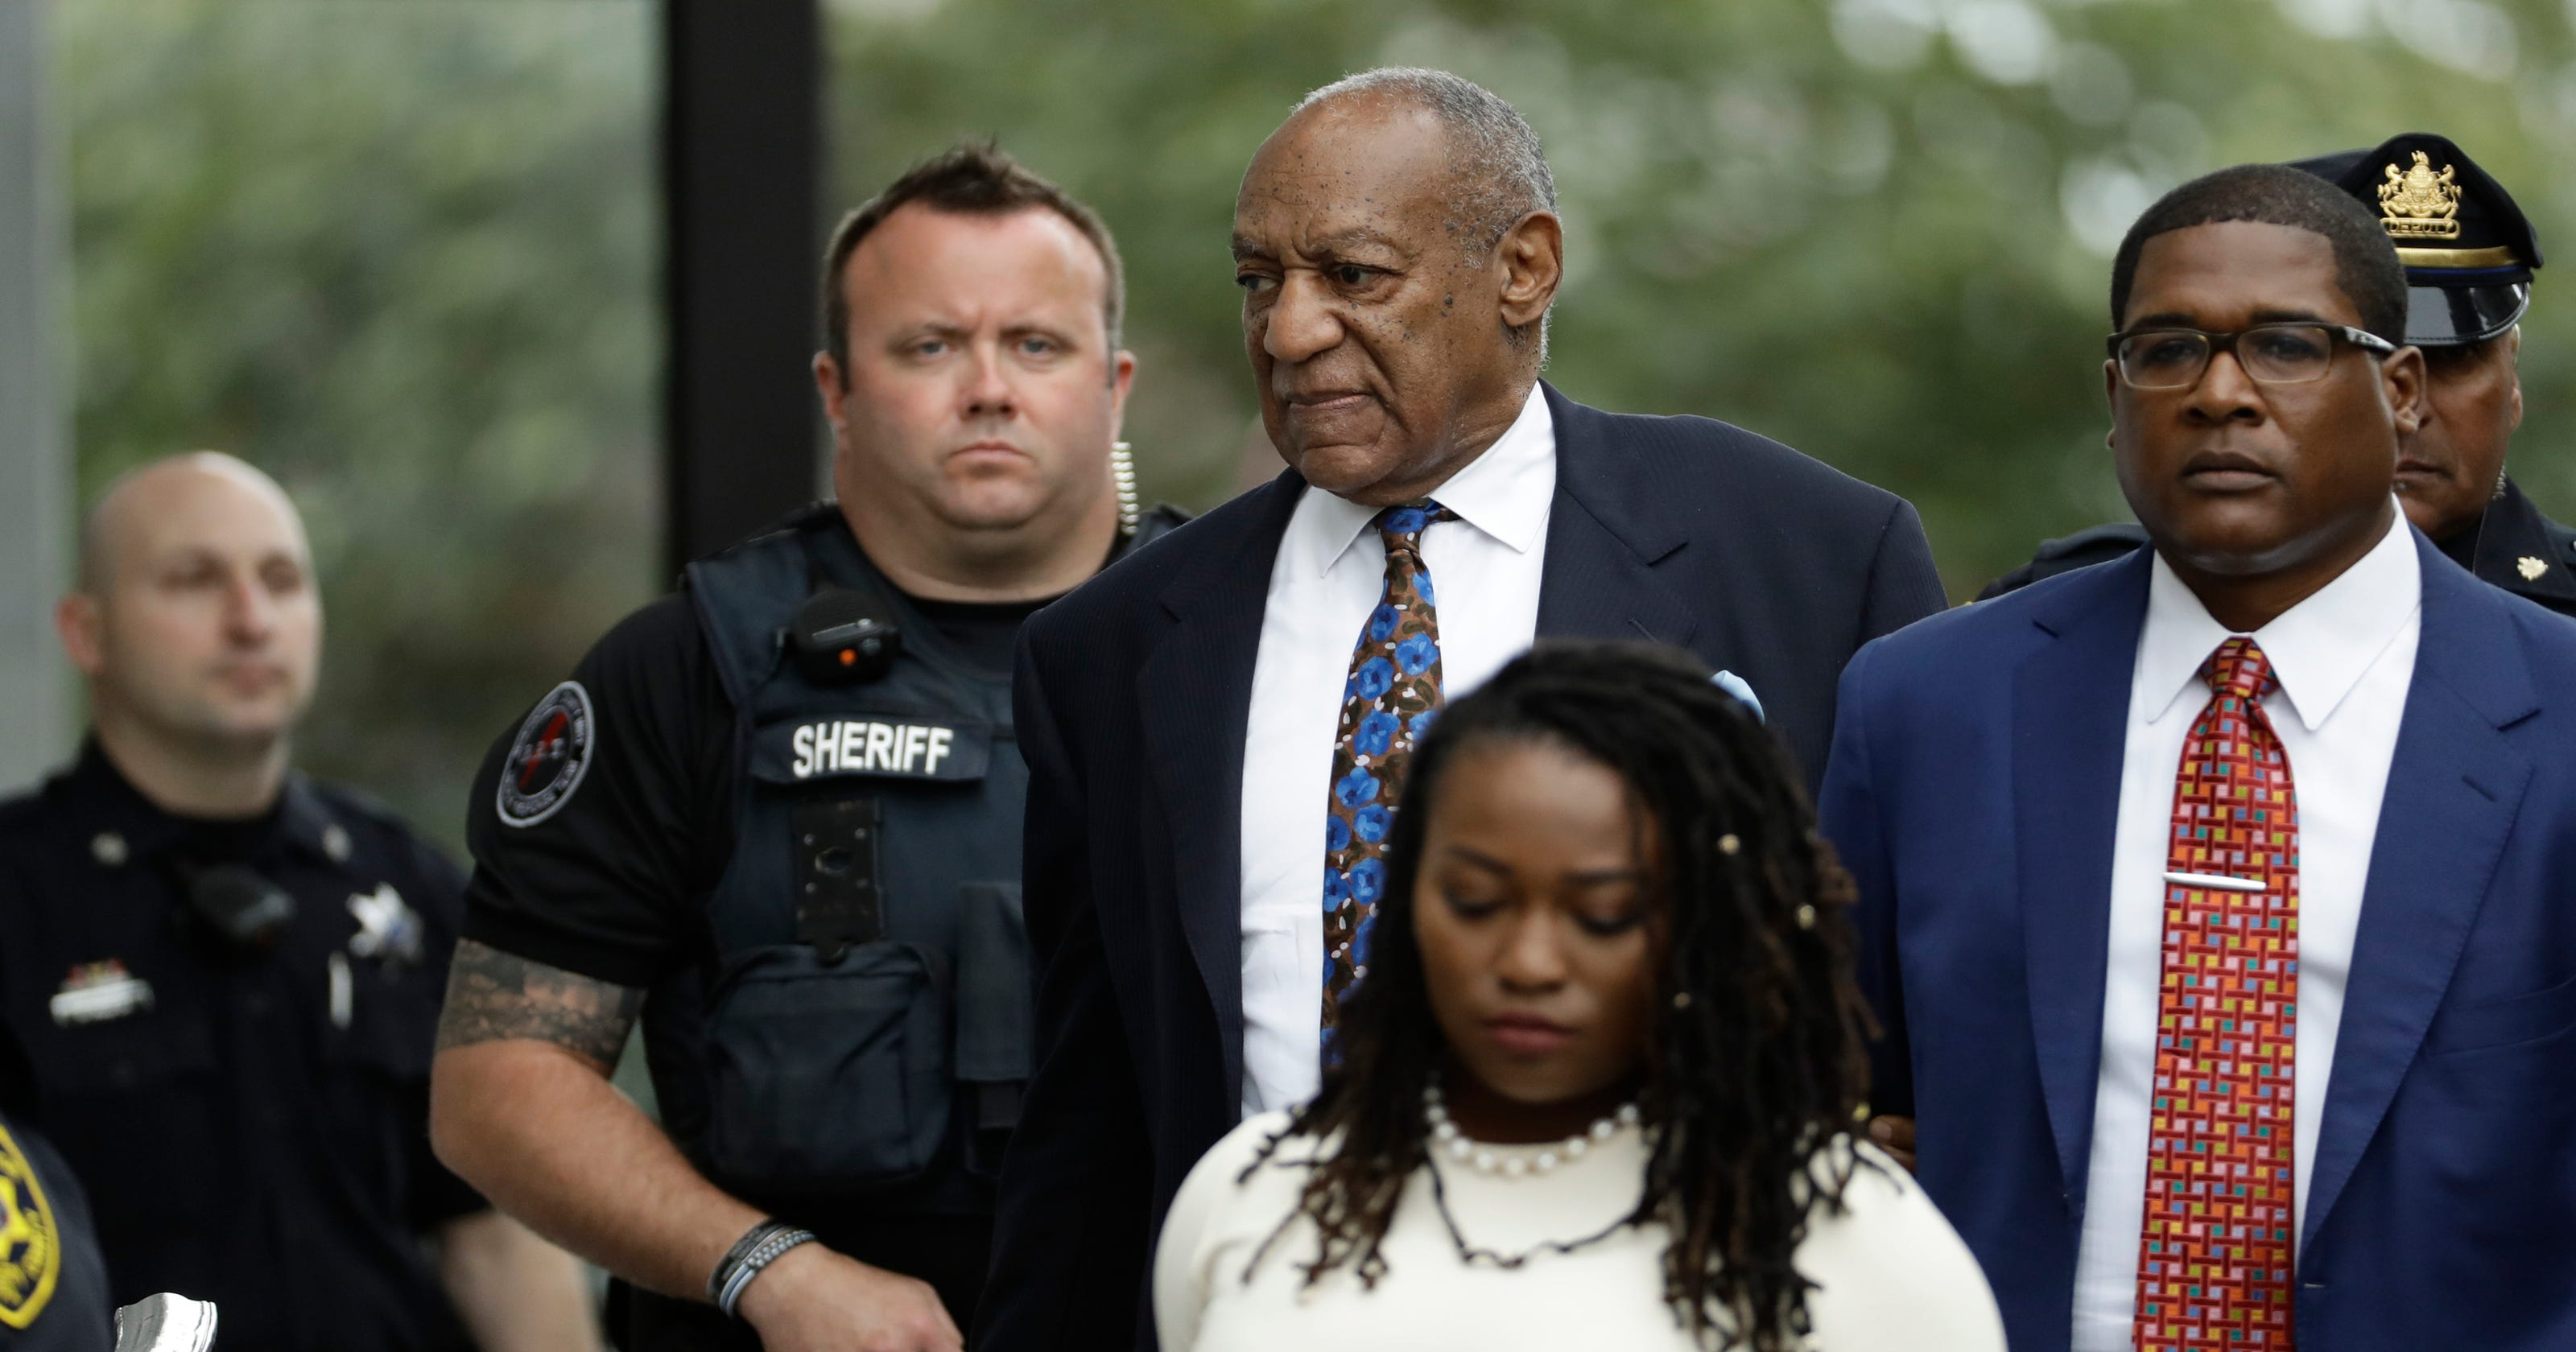 Bill Cosby's family has not visited him in prison, says